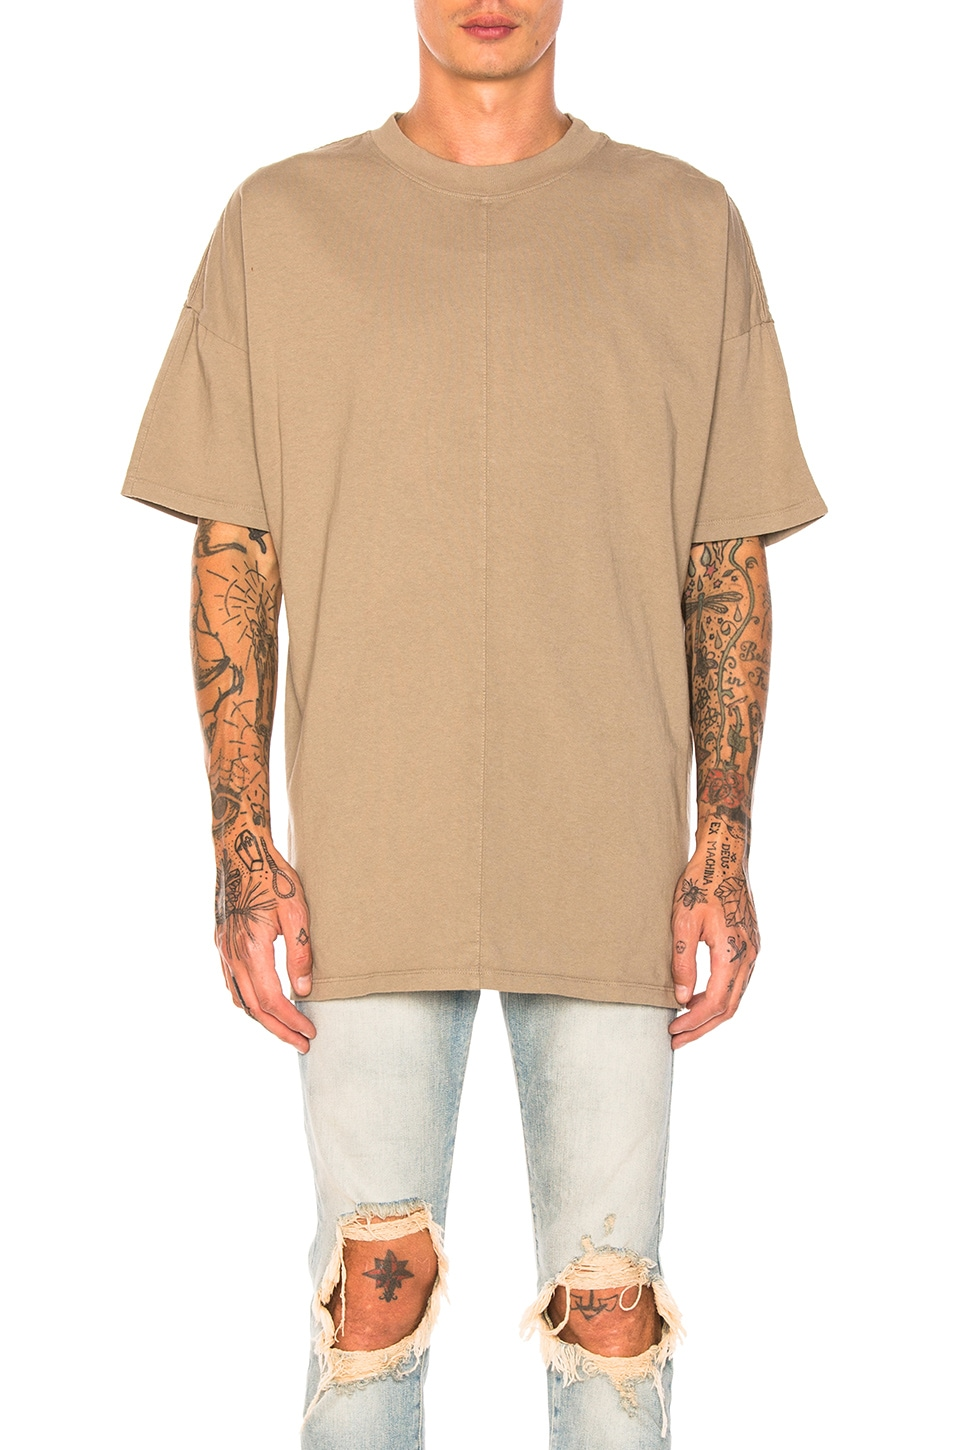 Oversized Heavy Tee by Daniel Patrick